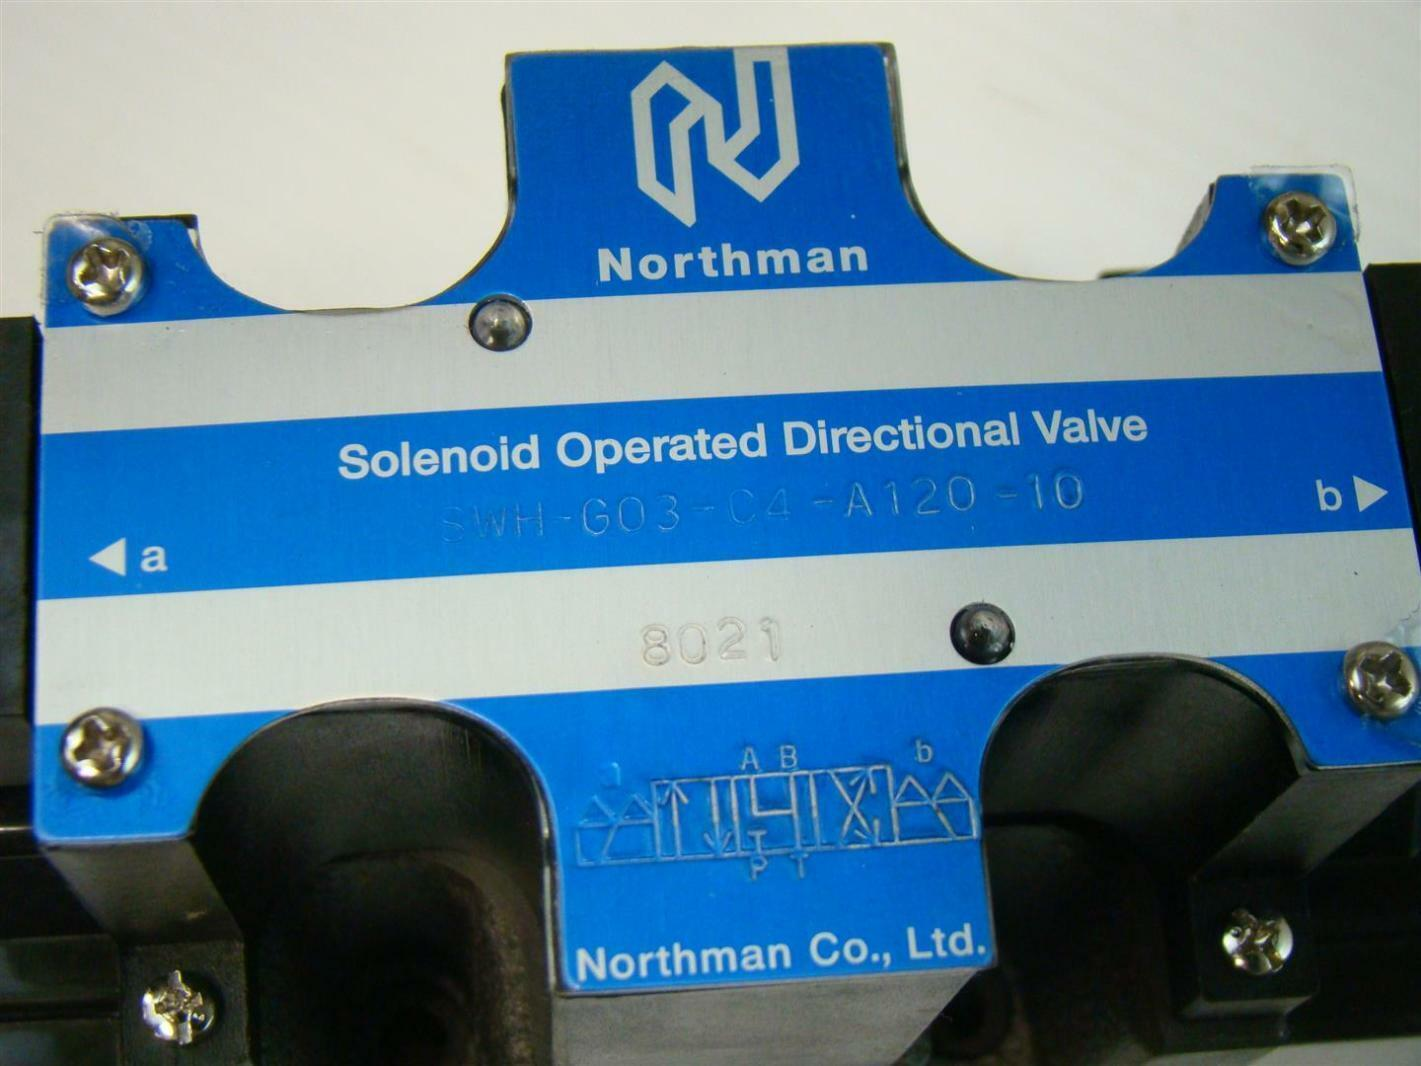 Northman Solenoid Operated Directional Valve 8021 Swh G03